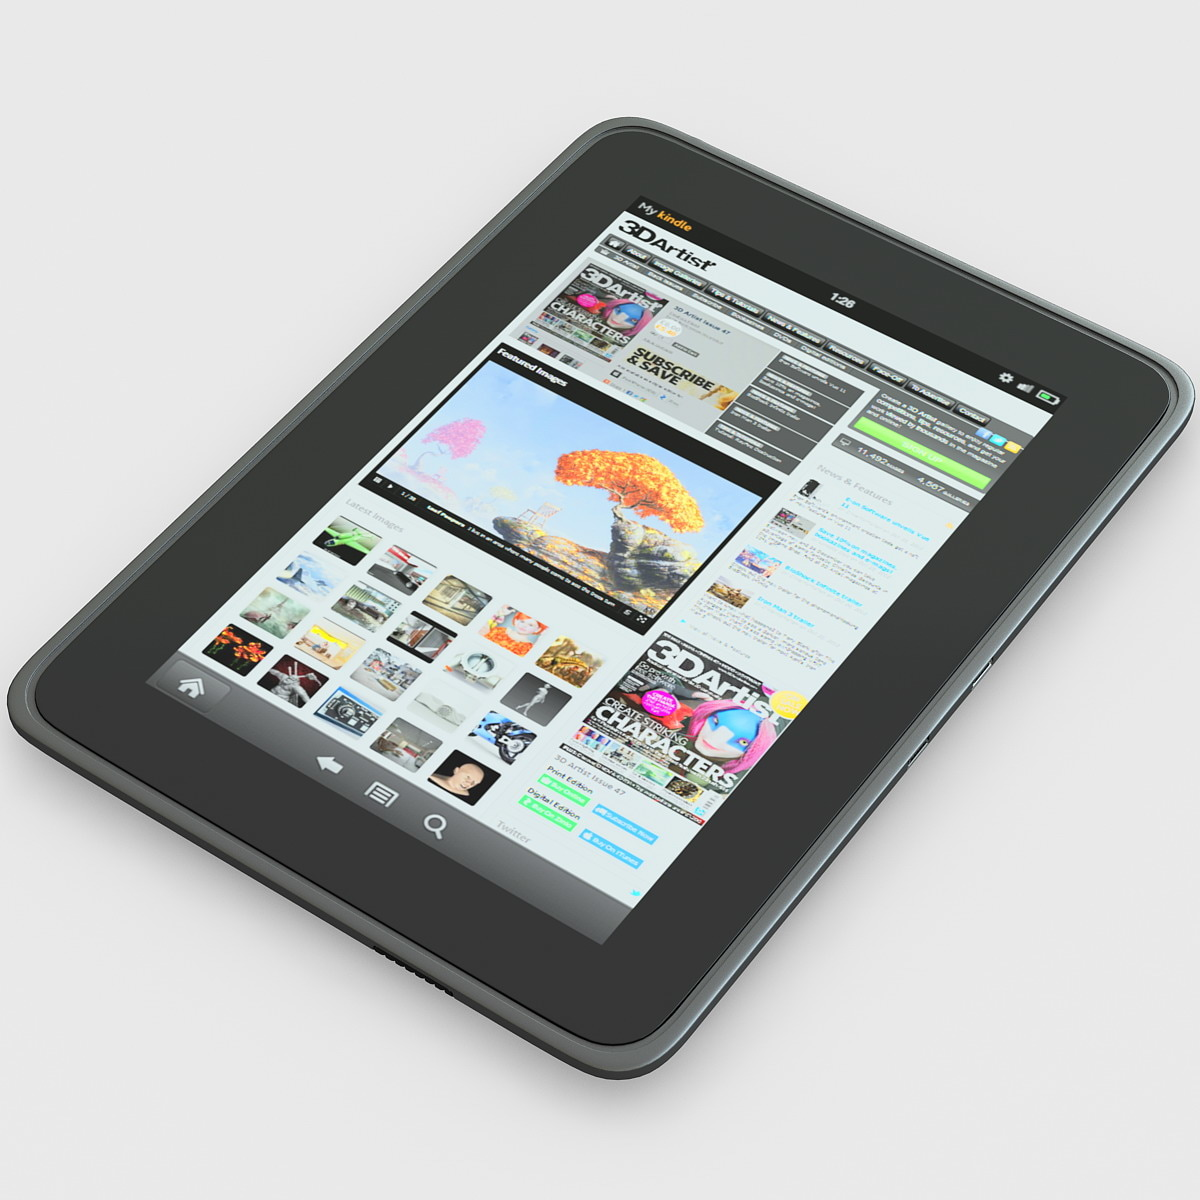 Kindle_Fire_HD_7_010.jpg